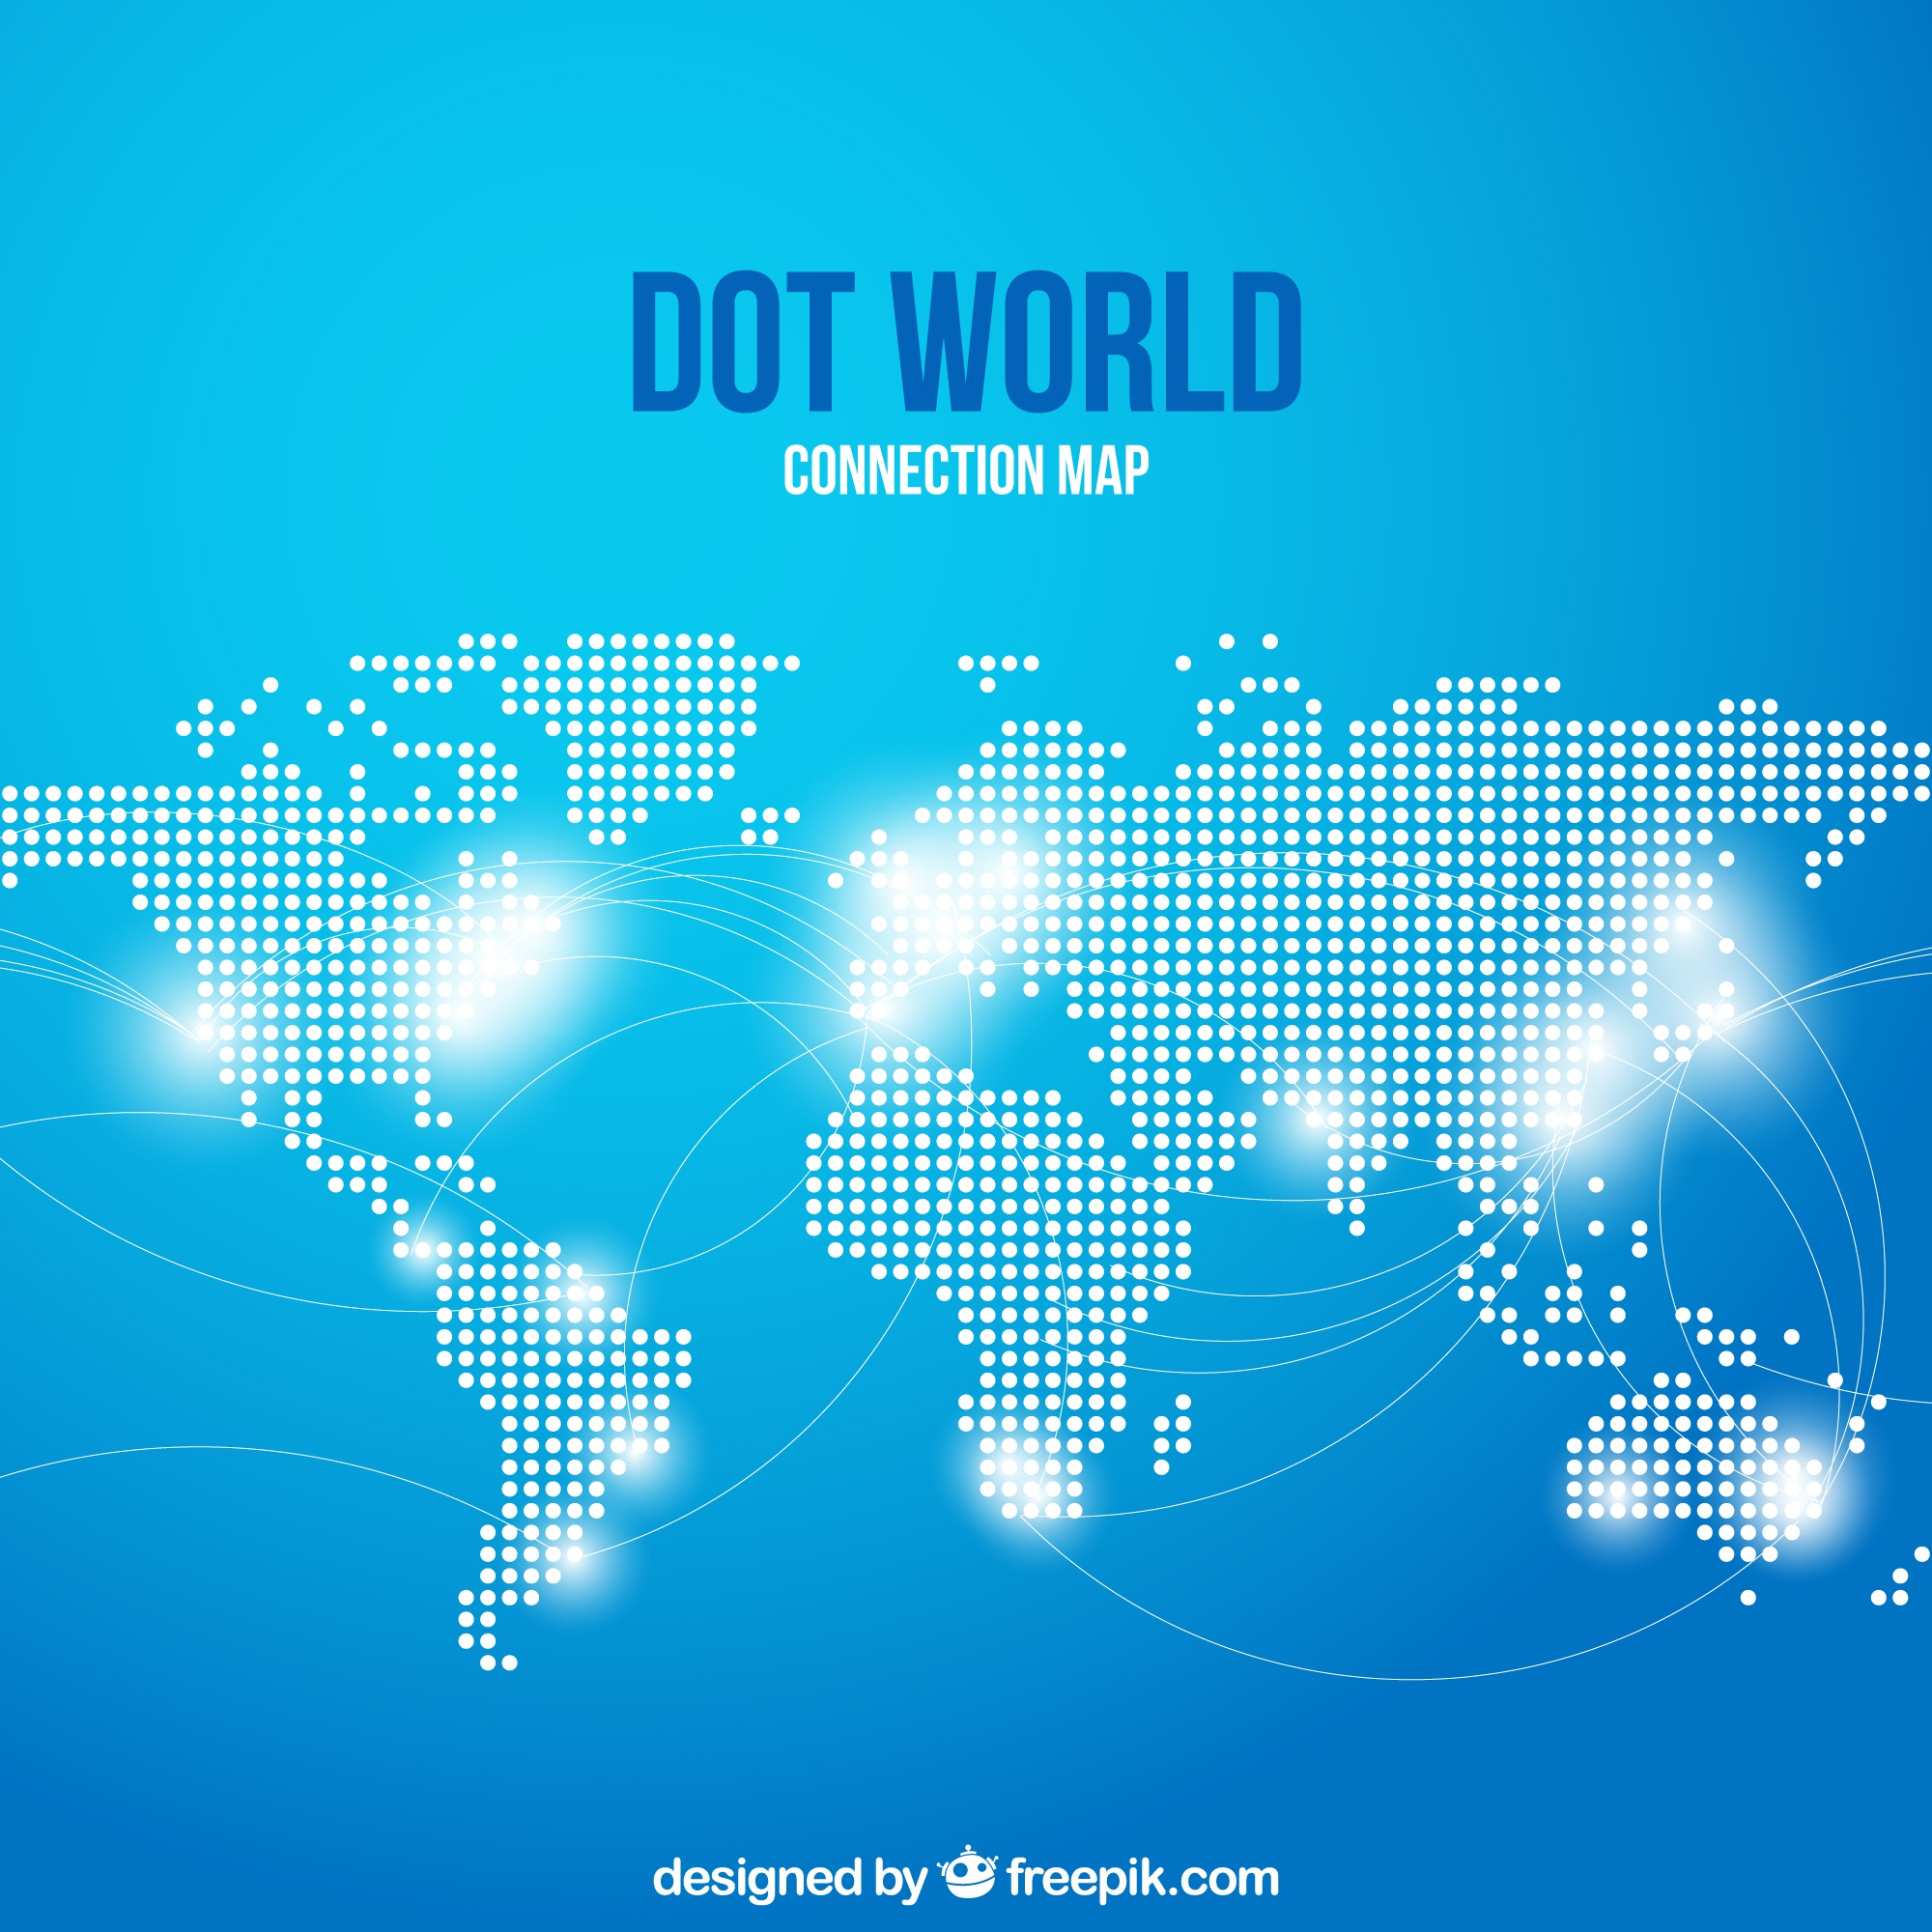 Dot world conection map with blue background